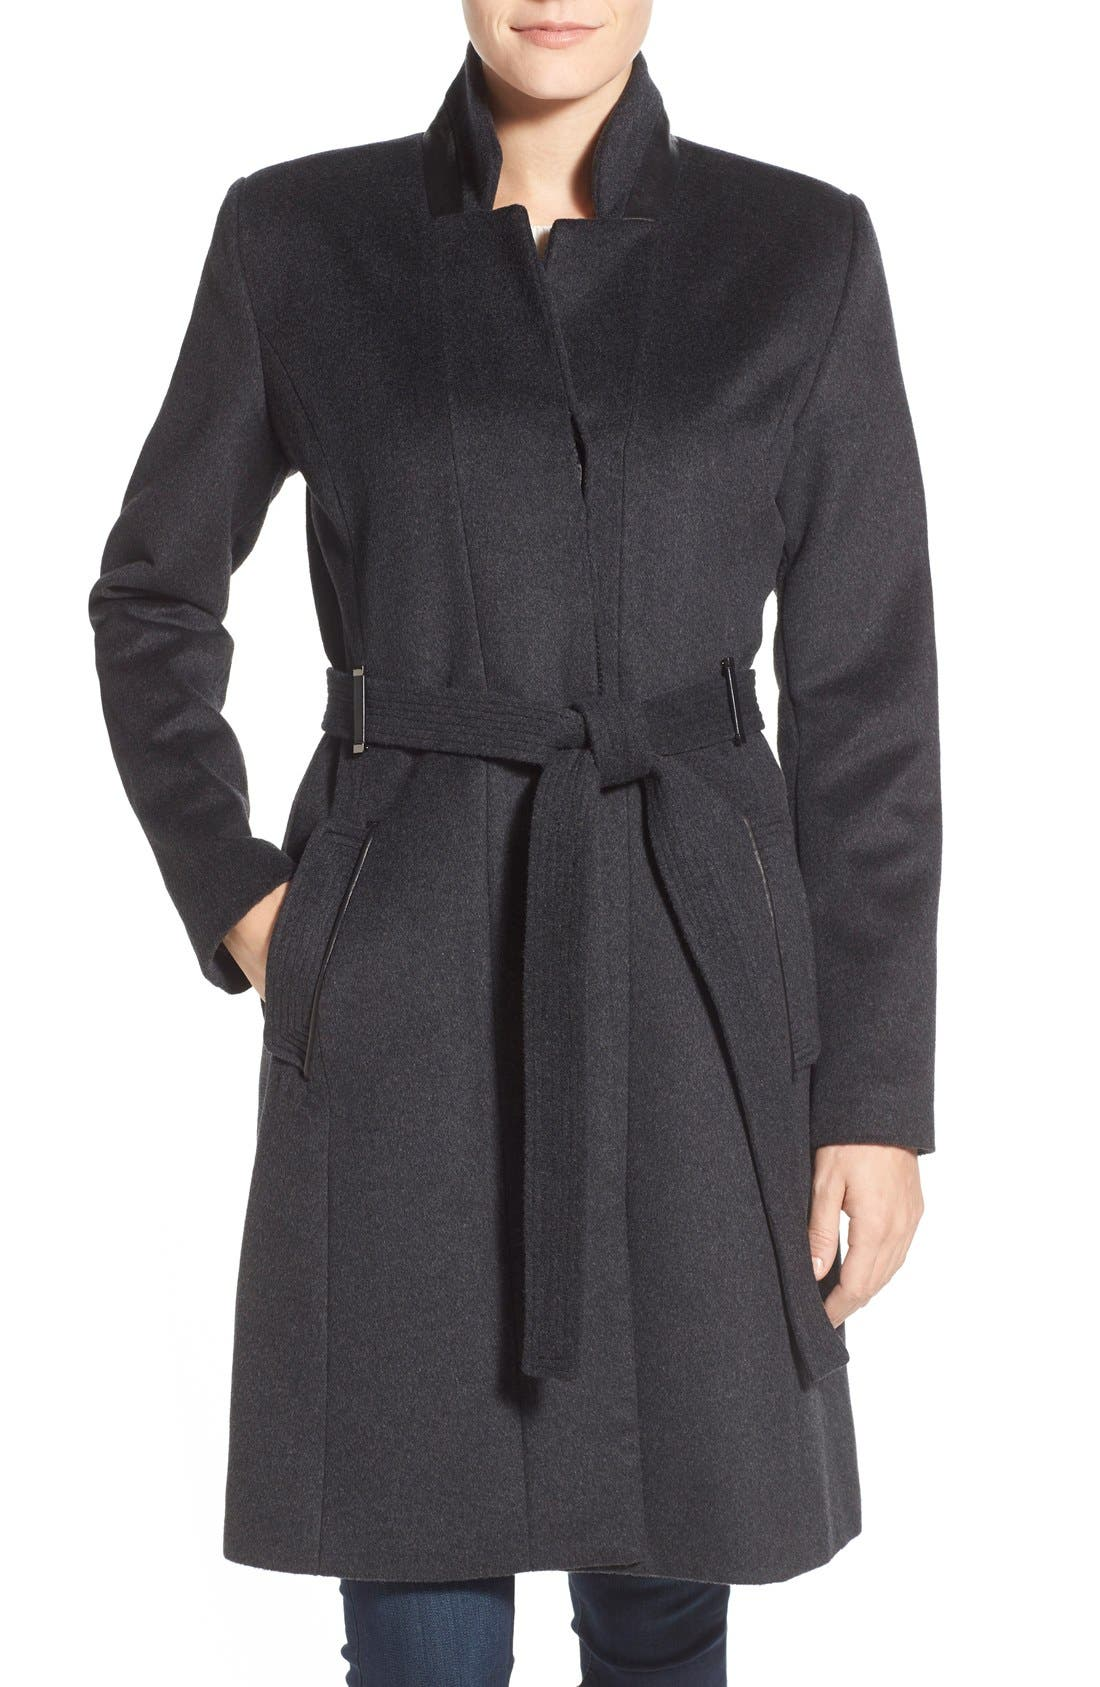 Badgley Mischka 'Ivana' Long Belted Inverted Collar Coat, Main, color, 020